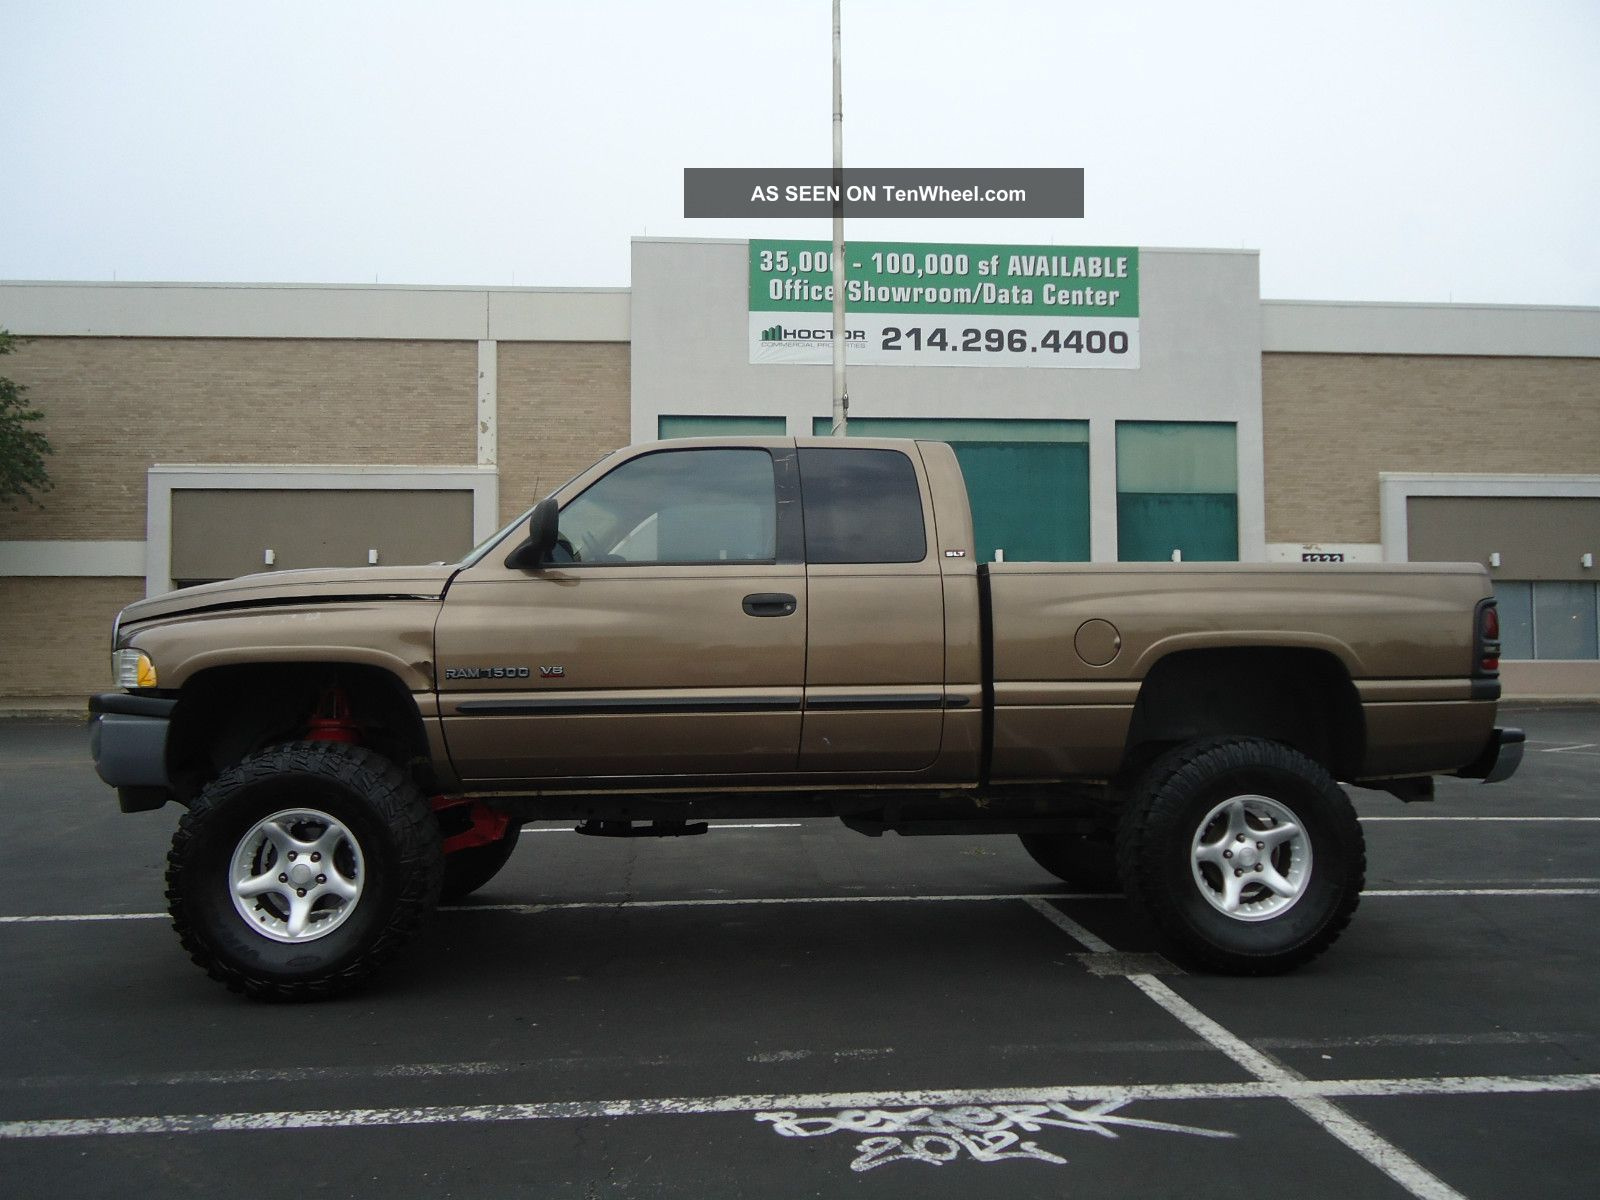 hight resolution of 2000 dodge ram 1500 lifted 4x4 off road look photo